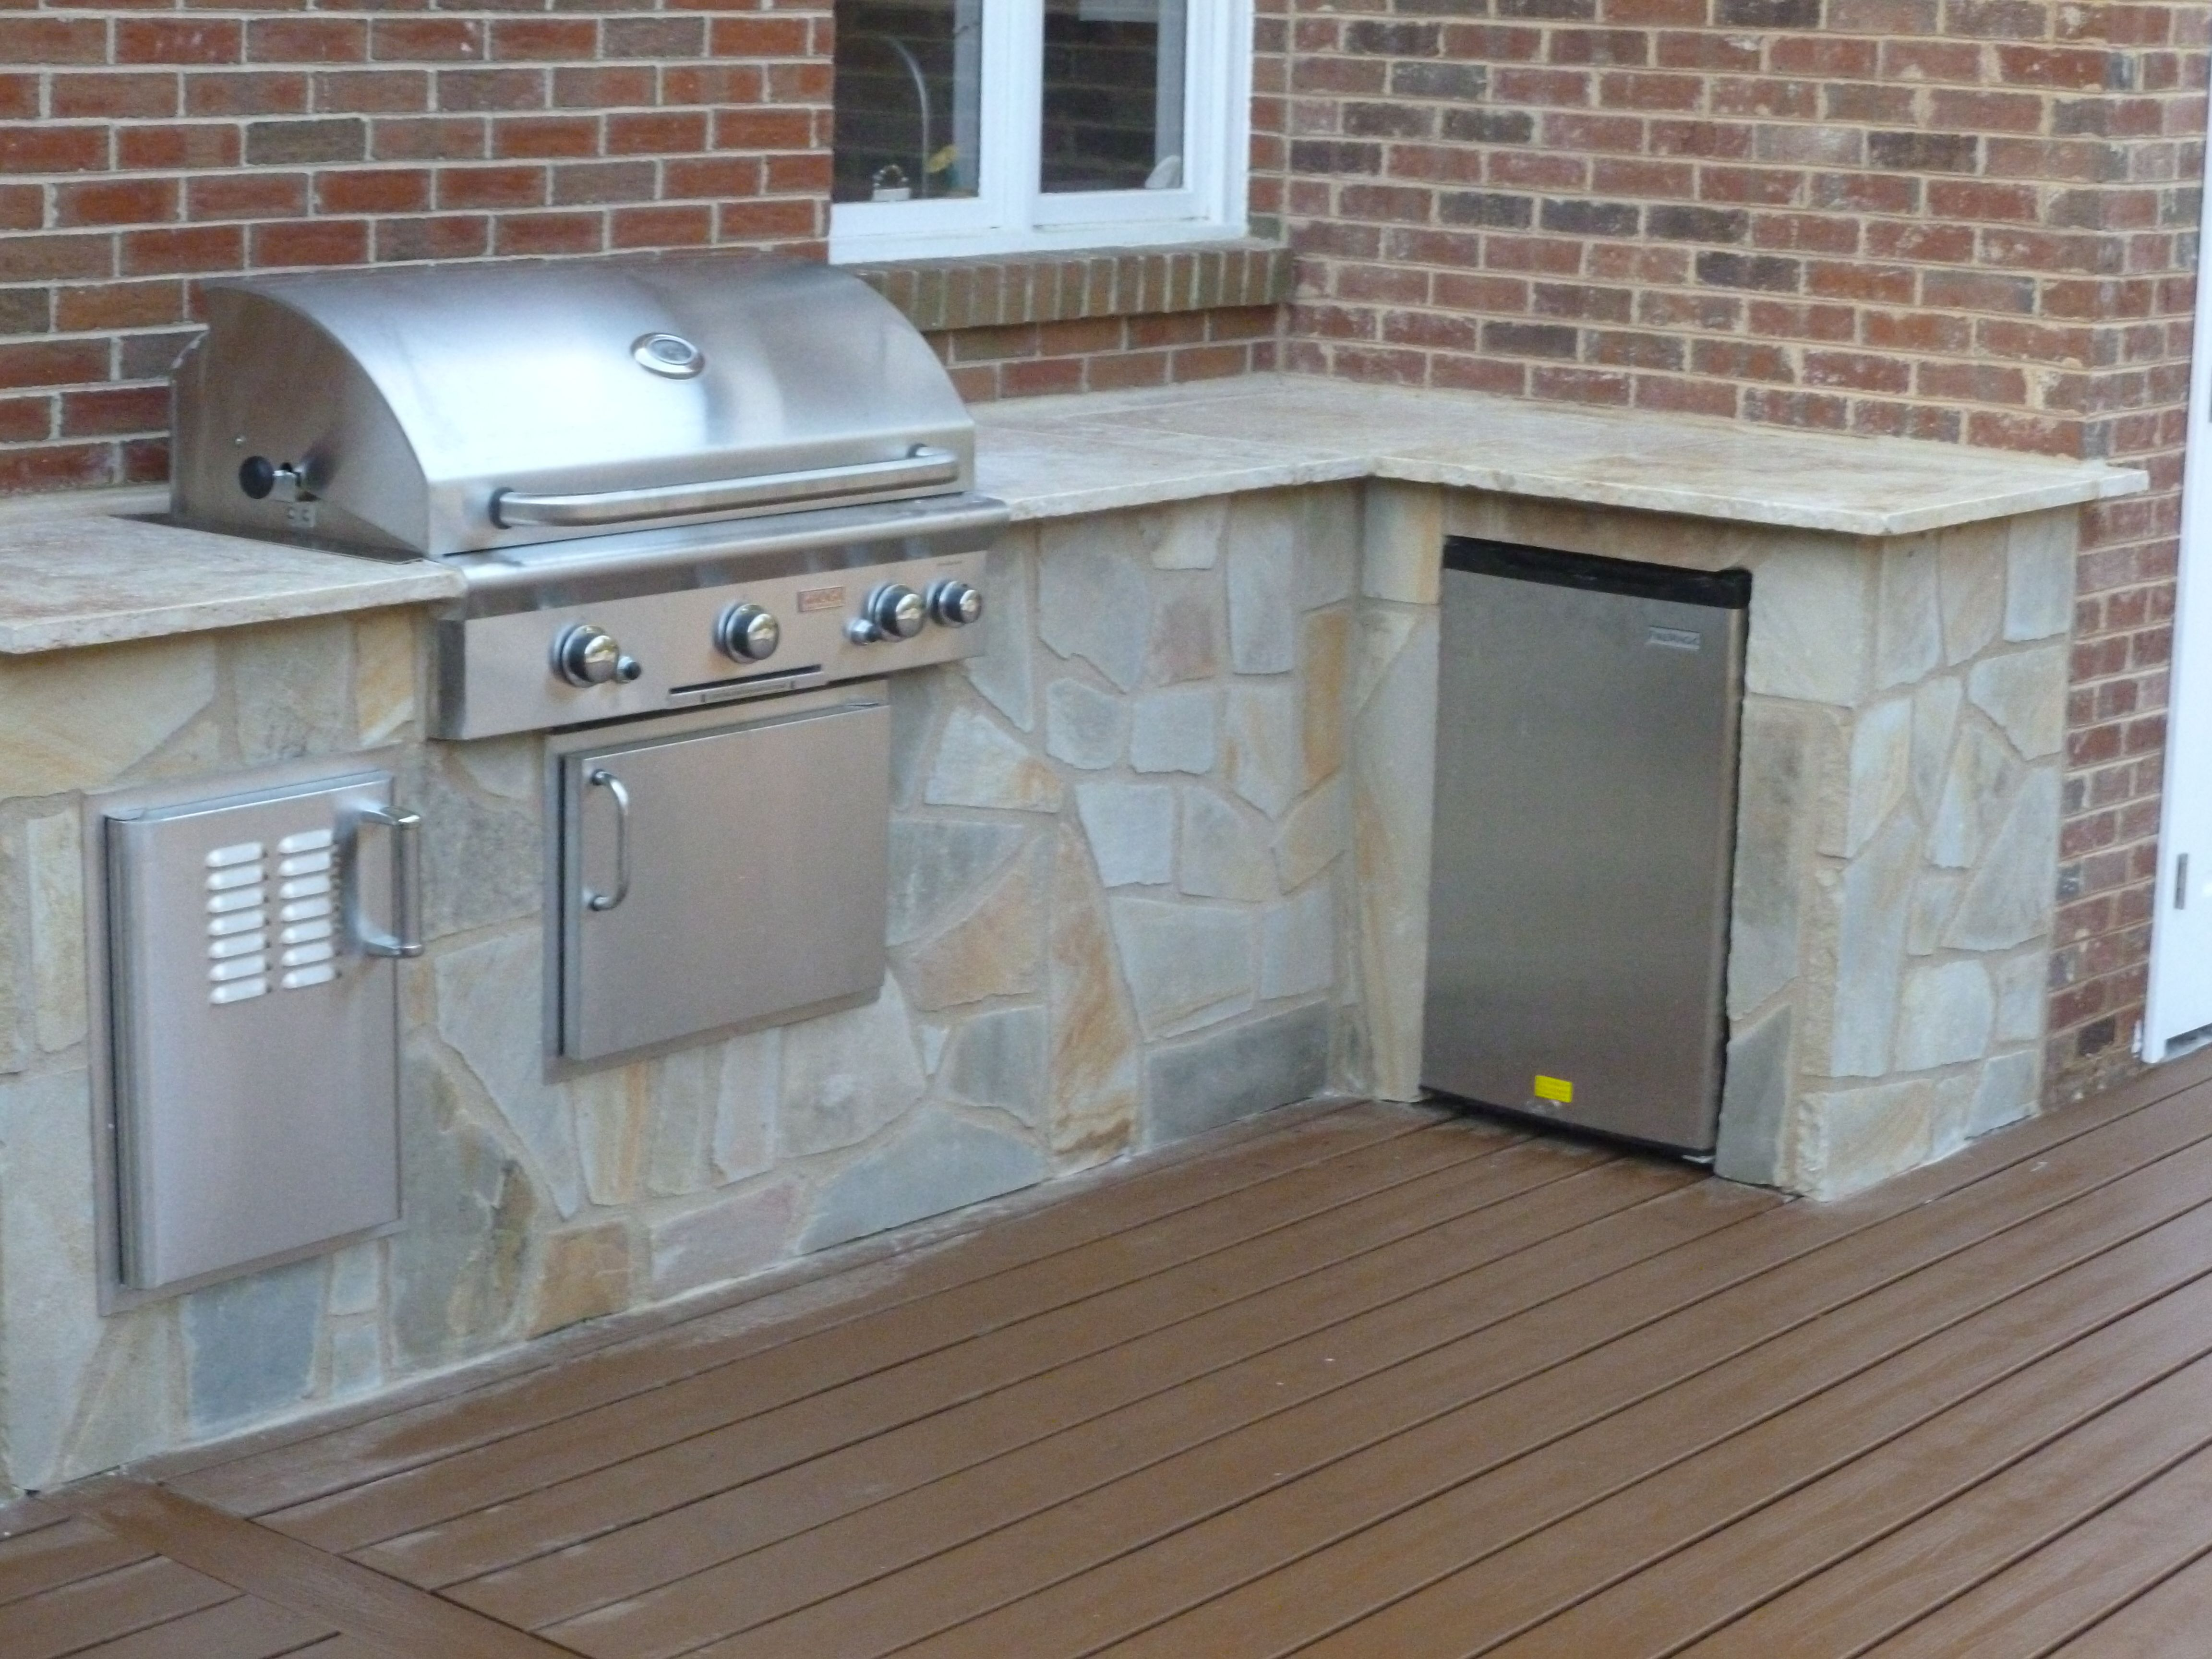 Fieldstone Outdoor Kitchen With Fire Magic Refrigerator Travertine Tile Counter Top An Outdoor Kitchen Appliances Outdoor Kitchen Countertops Outdoor Kitchen